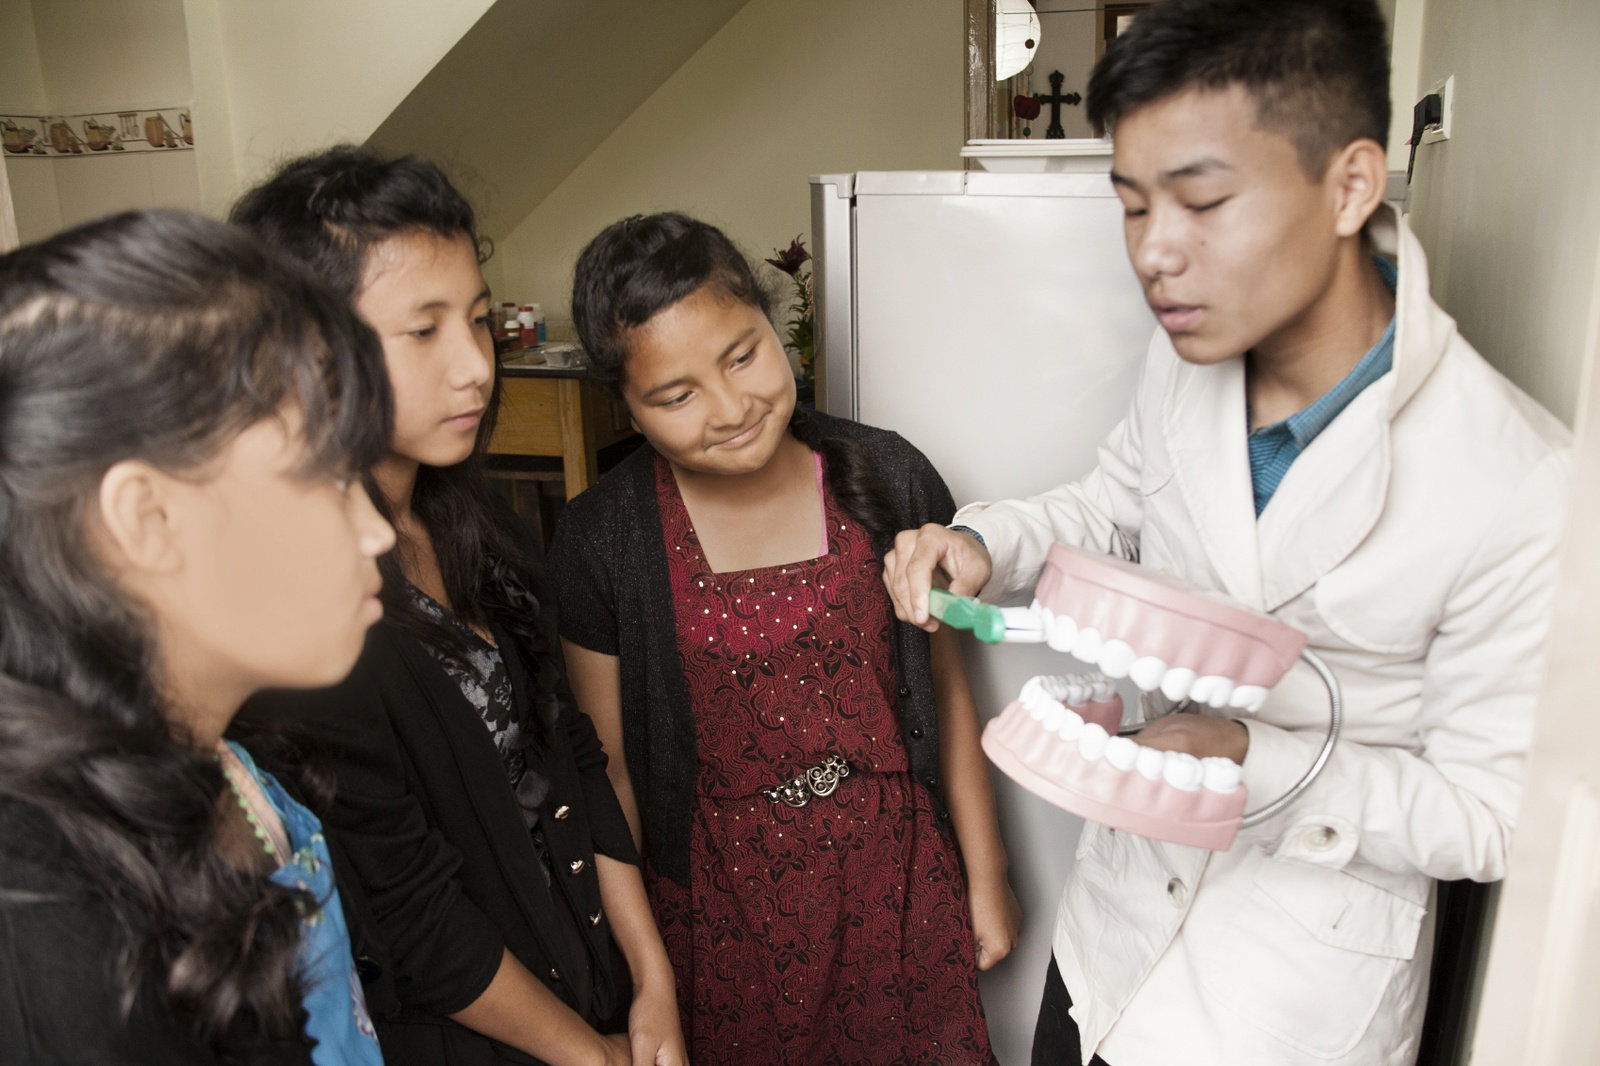 CHildren cleaning teeth. iStock_000070302187_Medium.jpg